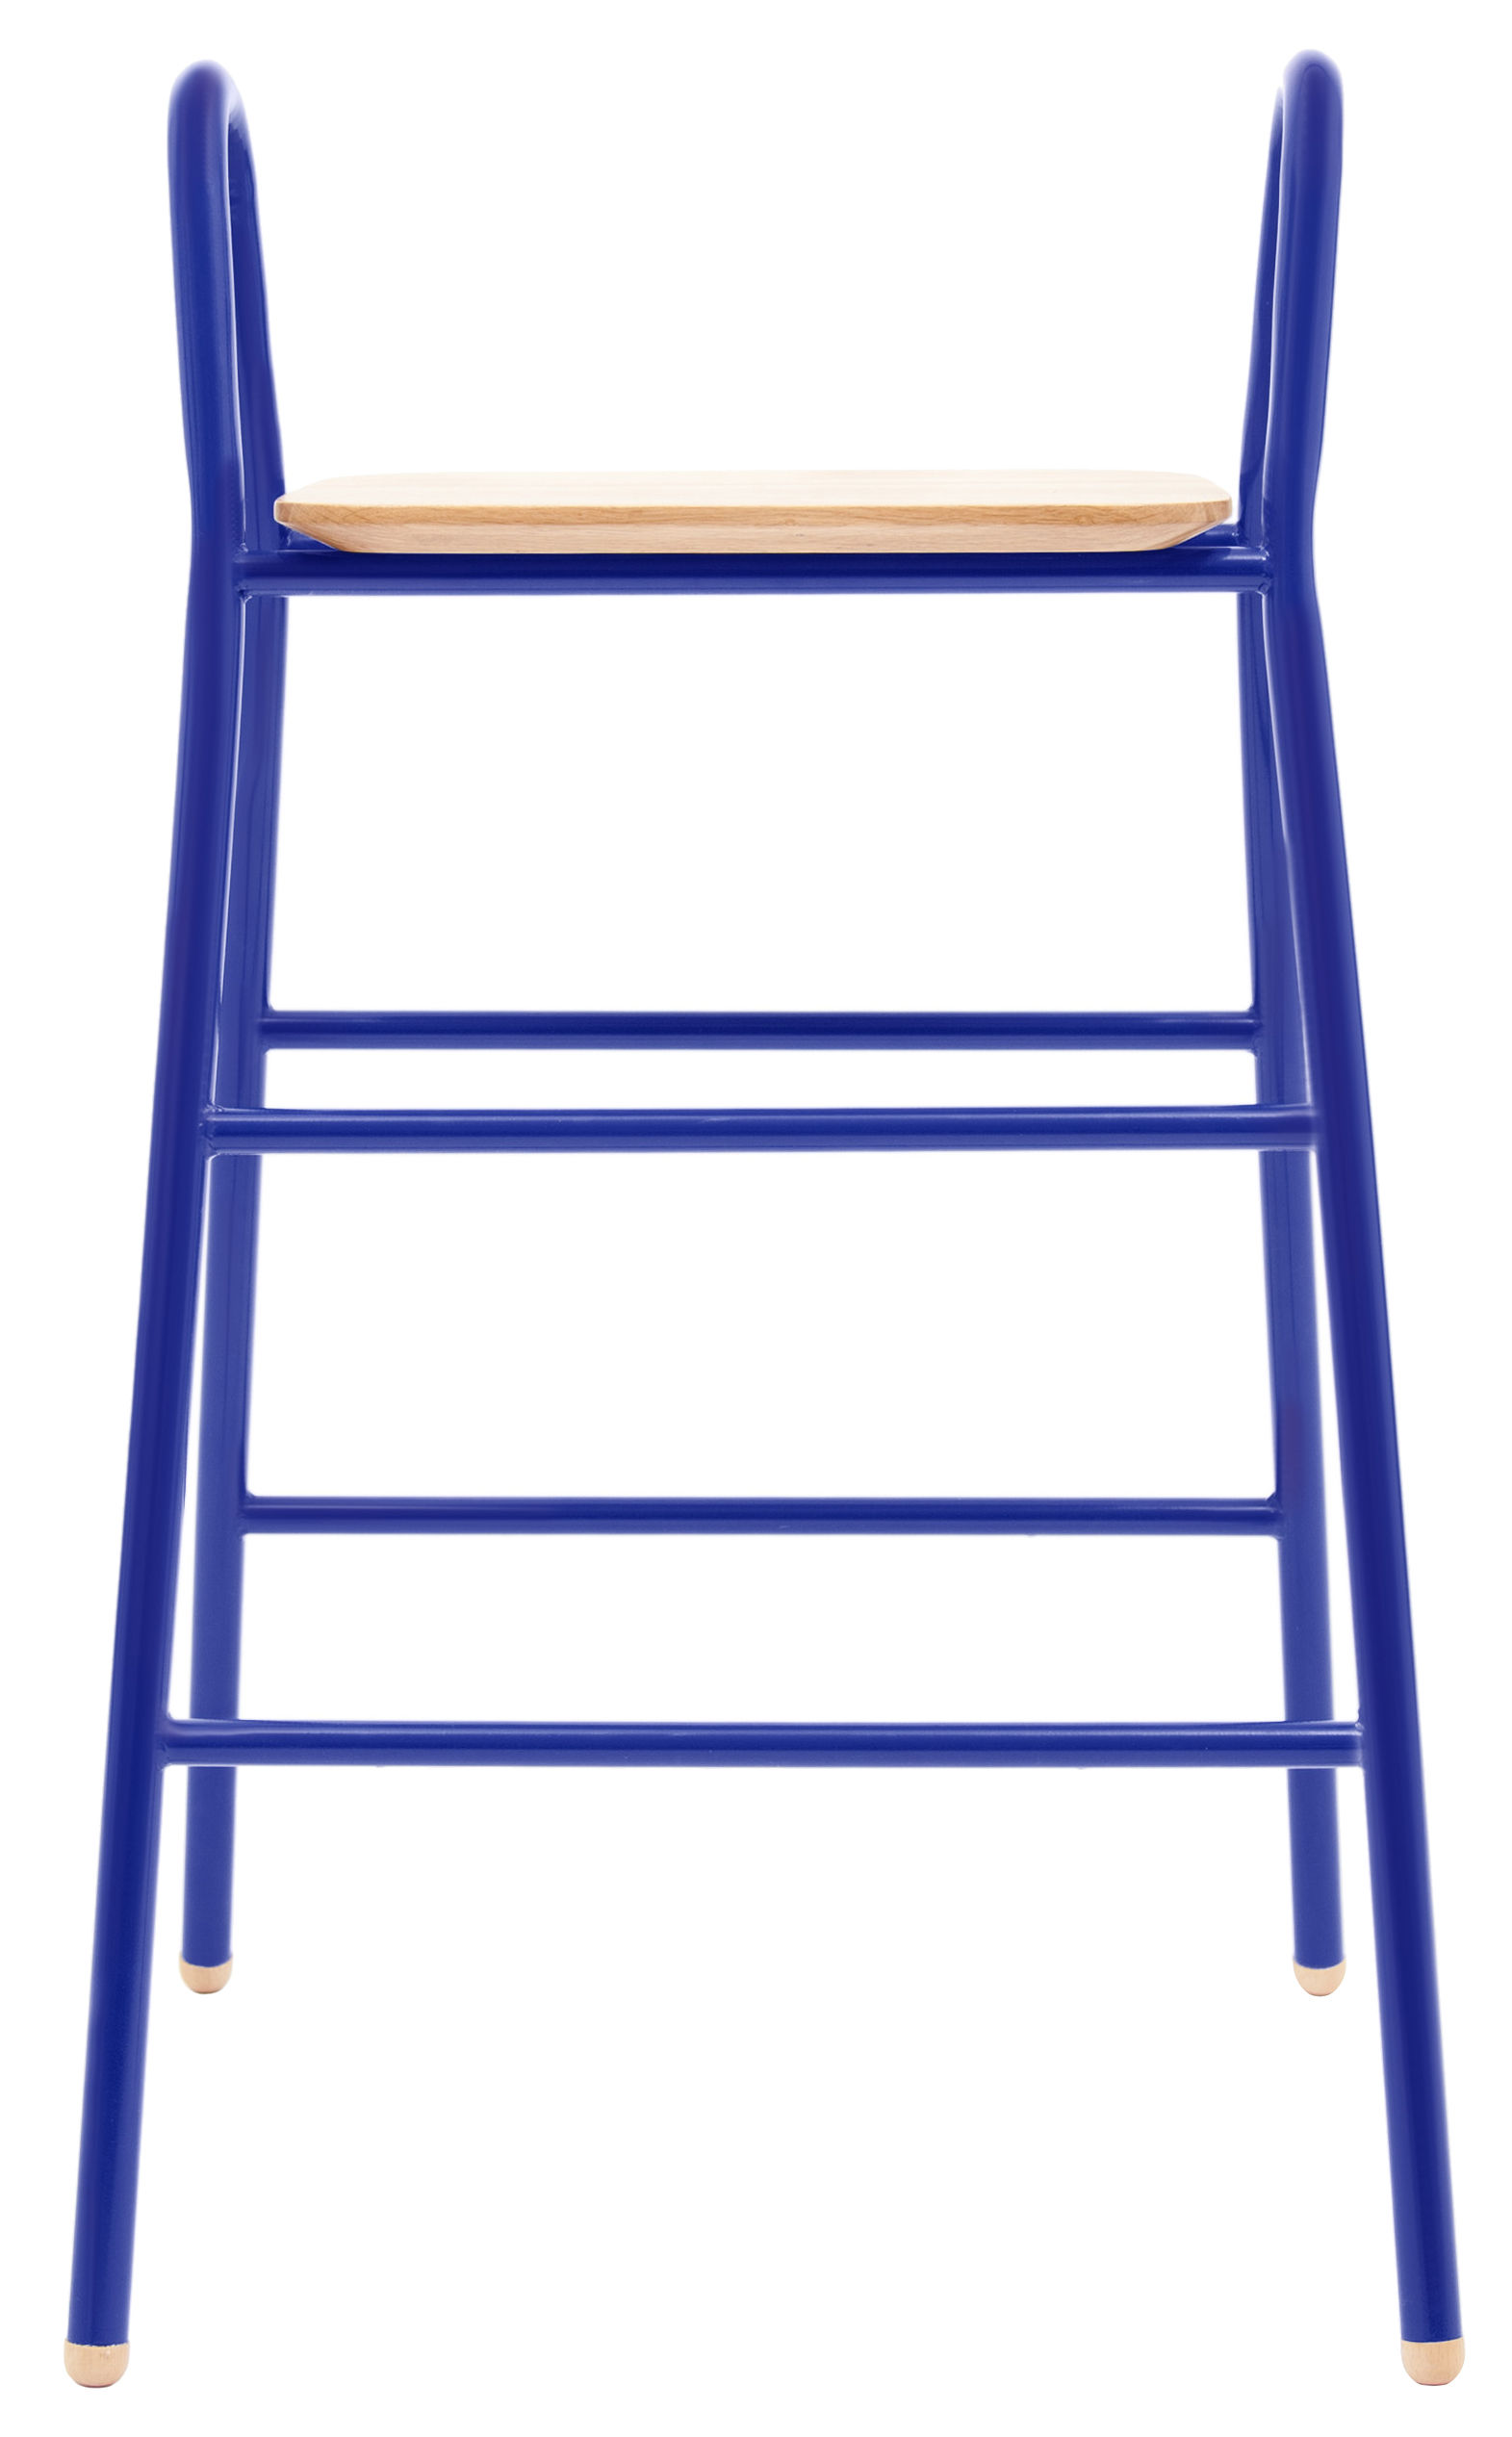 Furniture - Bar Stools - Lucien Bar stool - H 75 cm - Wood seat by Hartô - Realistic blue - Lacquered steel, Solid oak